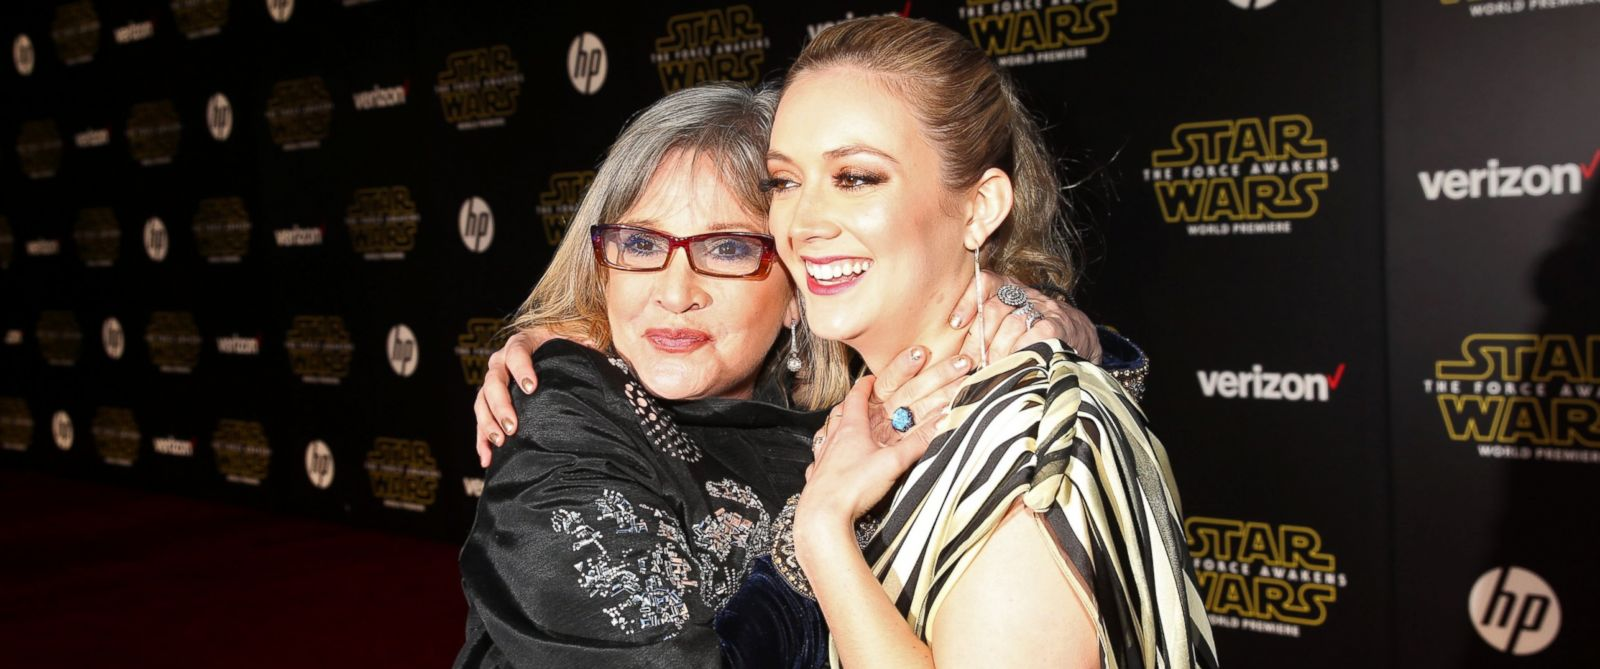 "PHOTO: Carrie Fisher (L) and Billie Lourd attend the World Premiere of ""?Star Wars: The Force Awakens""? at the Dolby, El Capitan, and TCL Theaters, Dec. 14, 2015 in Hollywood, California."